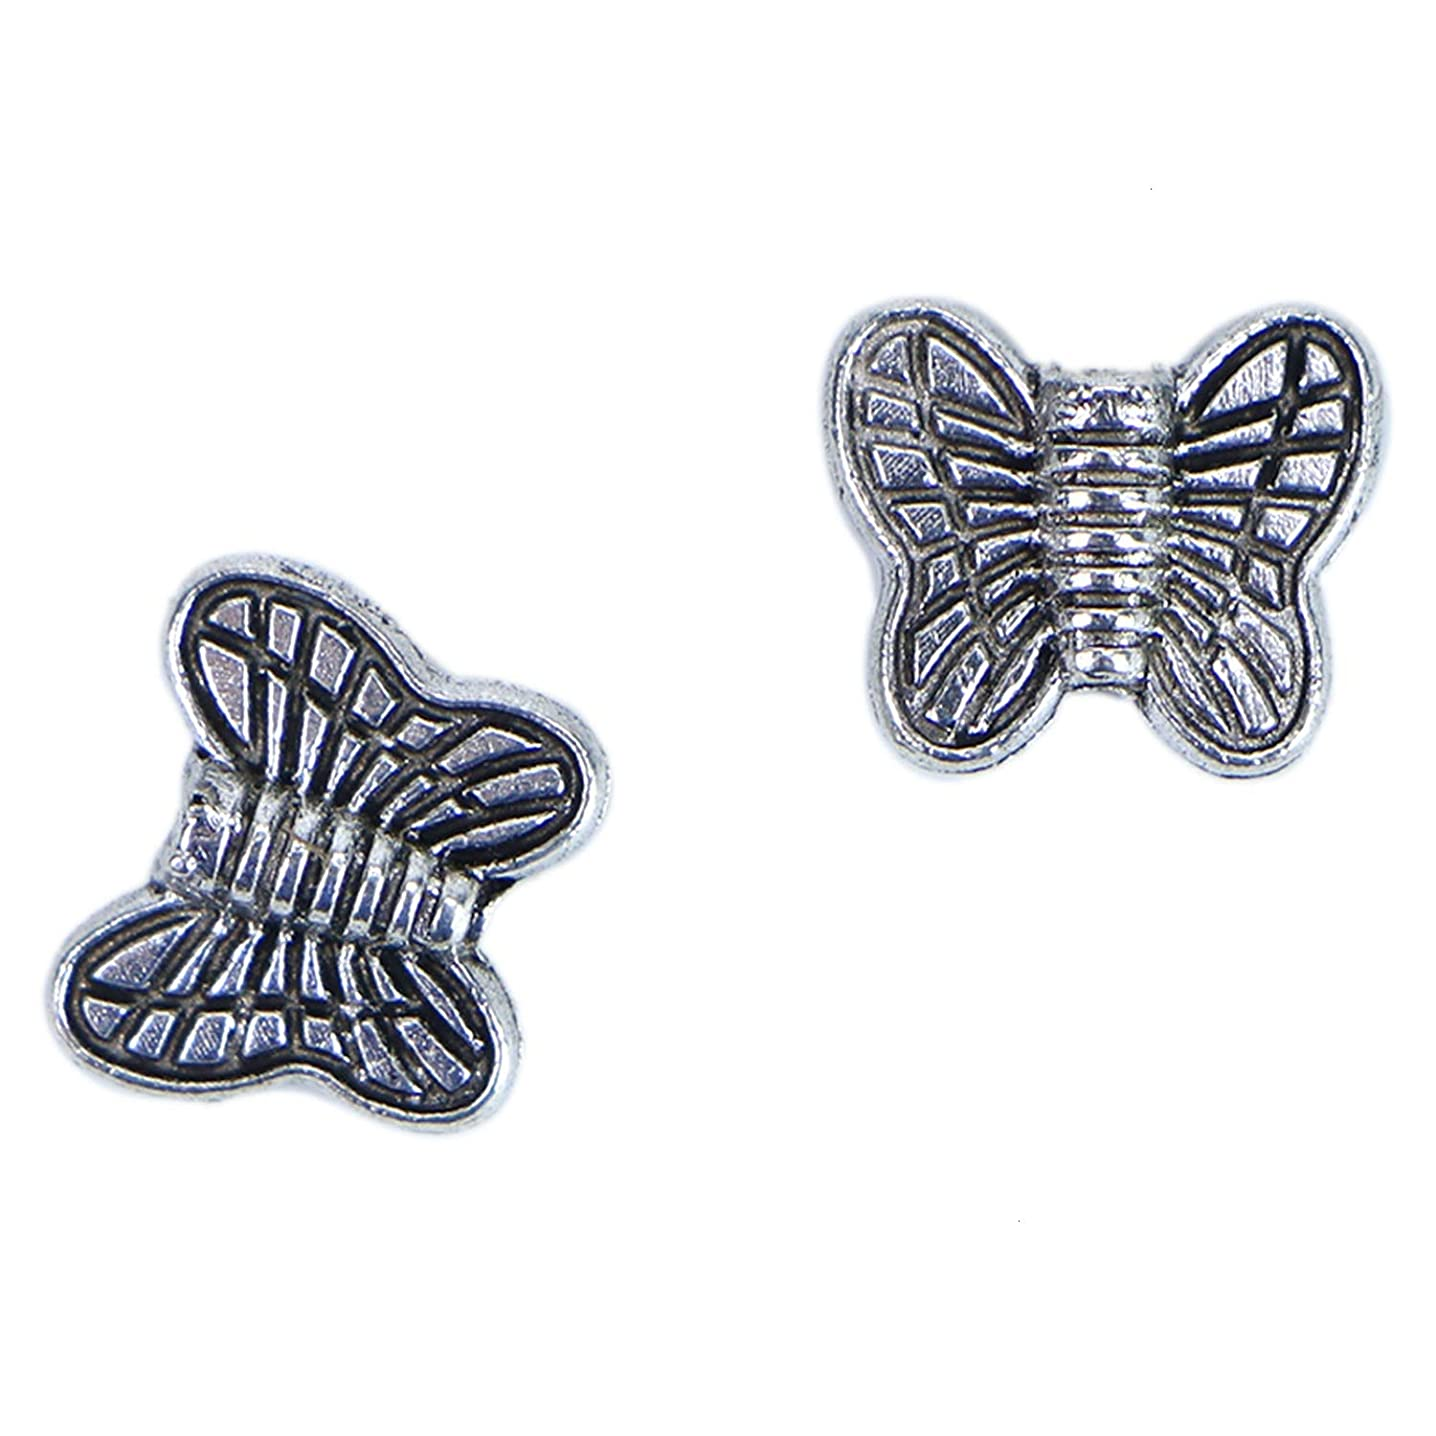 Monrocco 100 Pack Antique Silver Tibetan Butterfly Spacer Beads Animal Metal Beads Loose Beads for Bracelets Jewelry Making